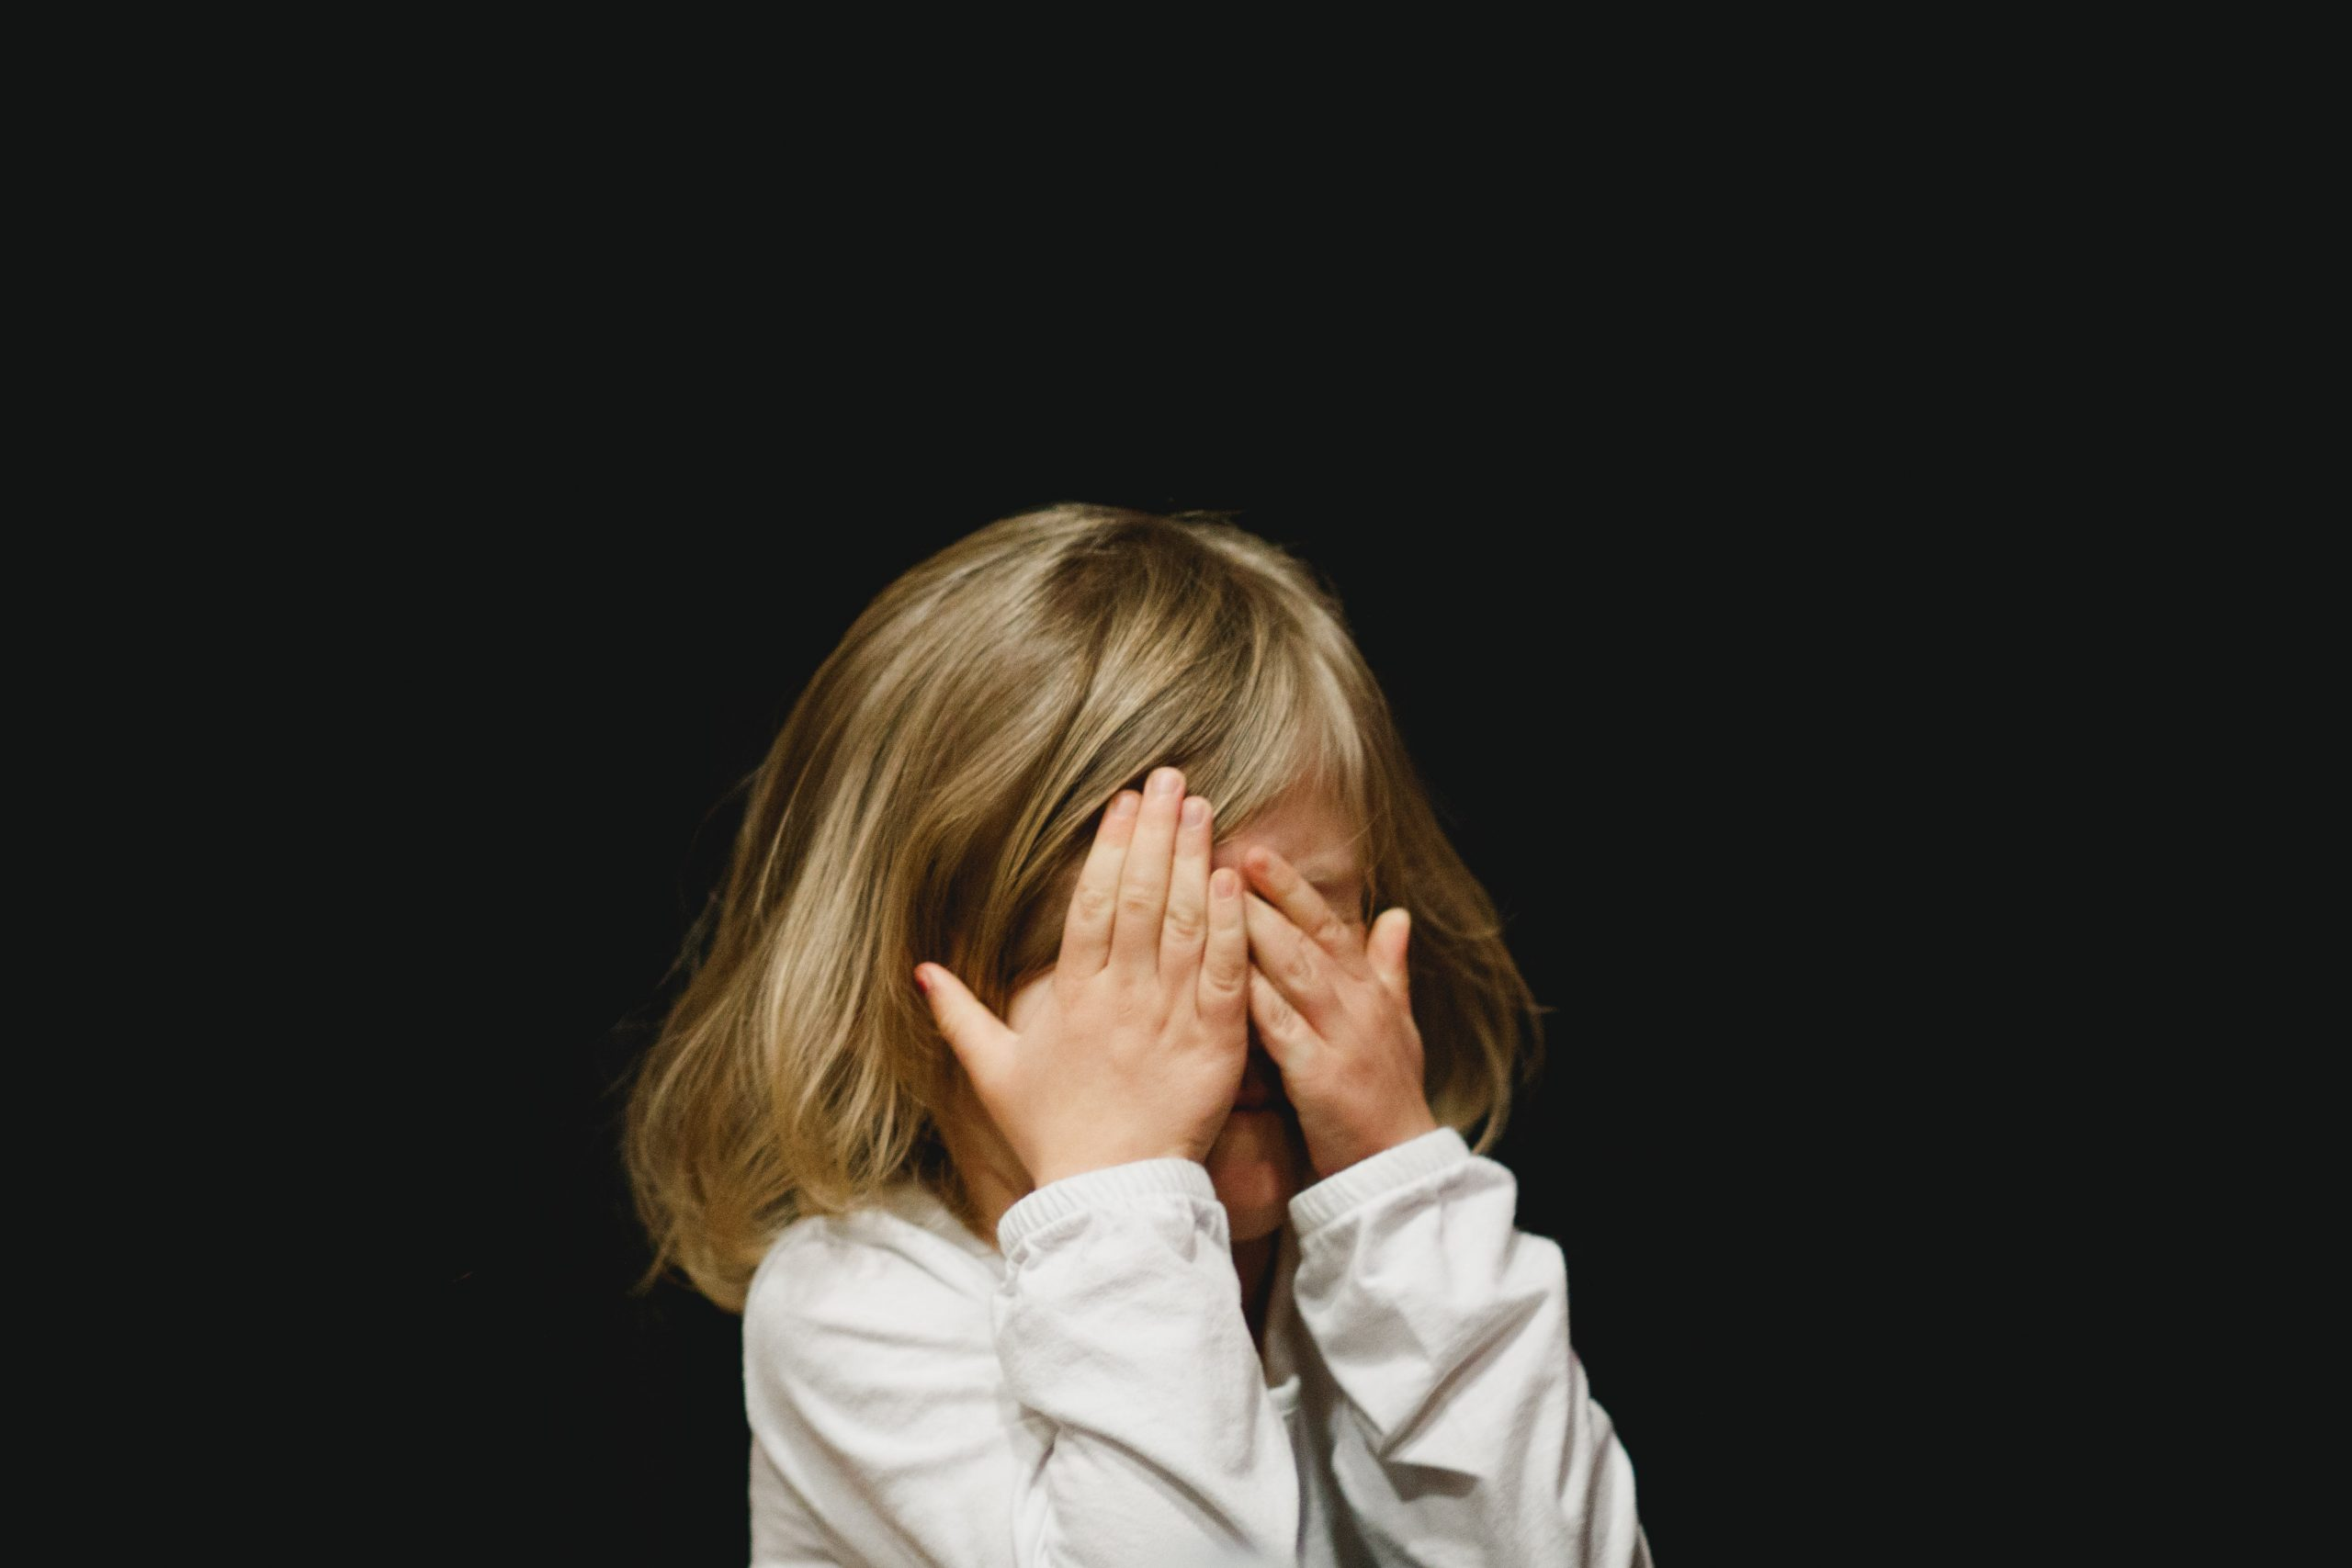 Little girl with hands covering face